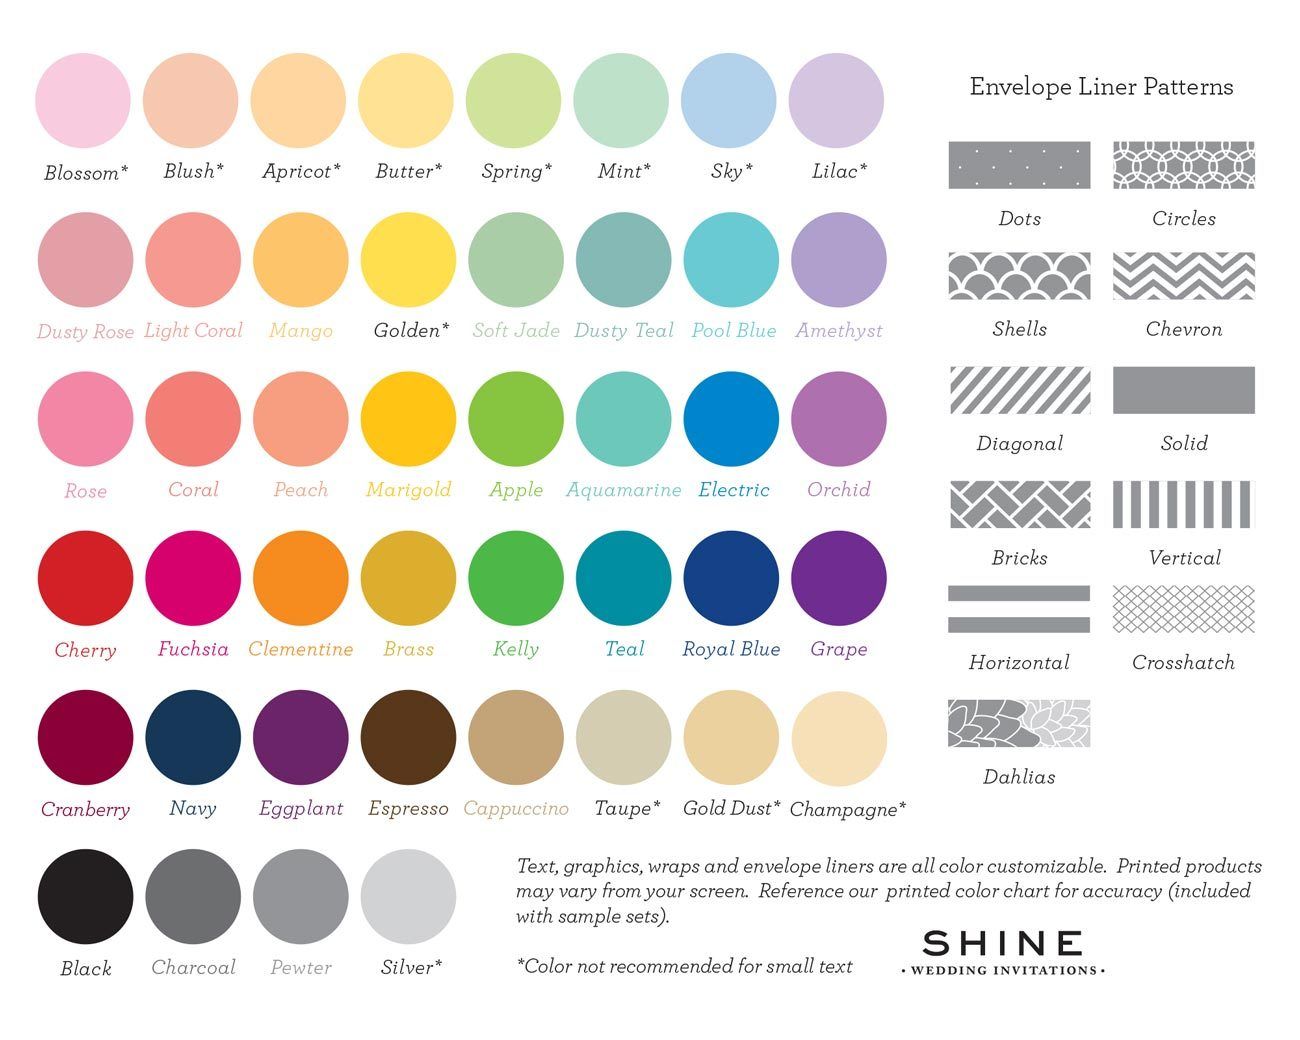 Whats your wedding color palette wedding invitations shine wedding invitations color chart junglespirit Image collections